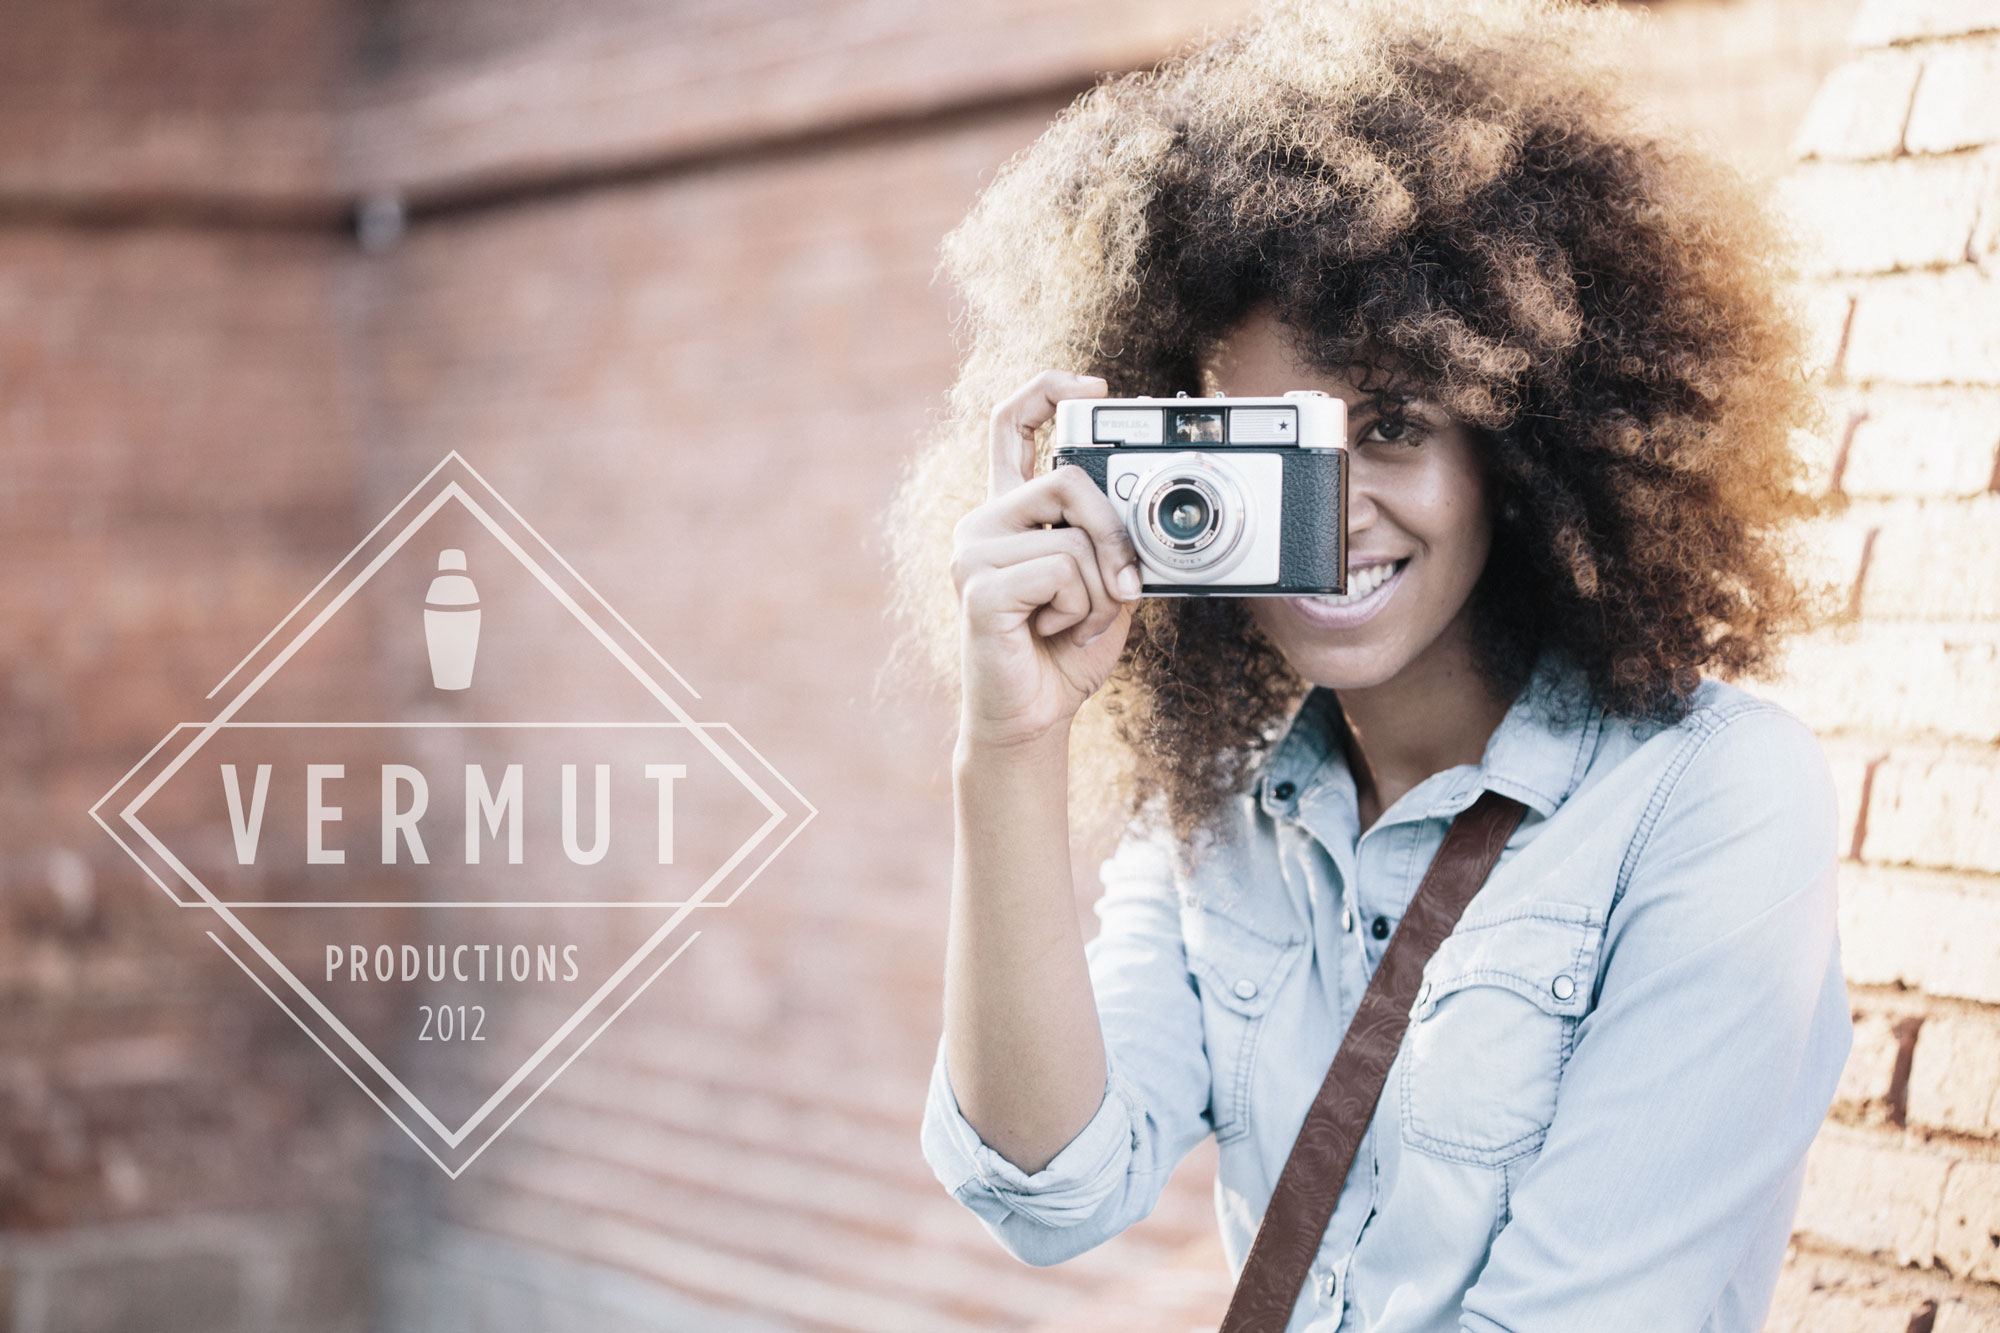 Vermut Productions Selfie with logo